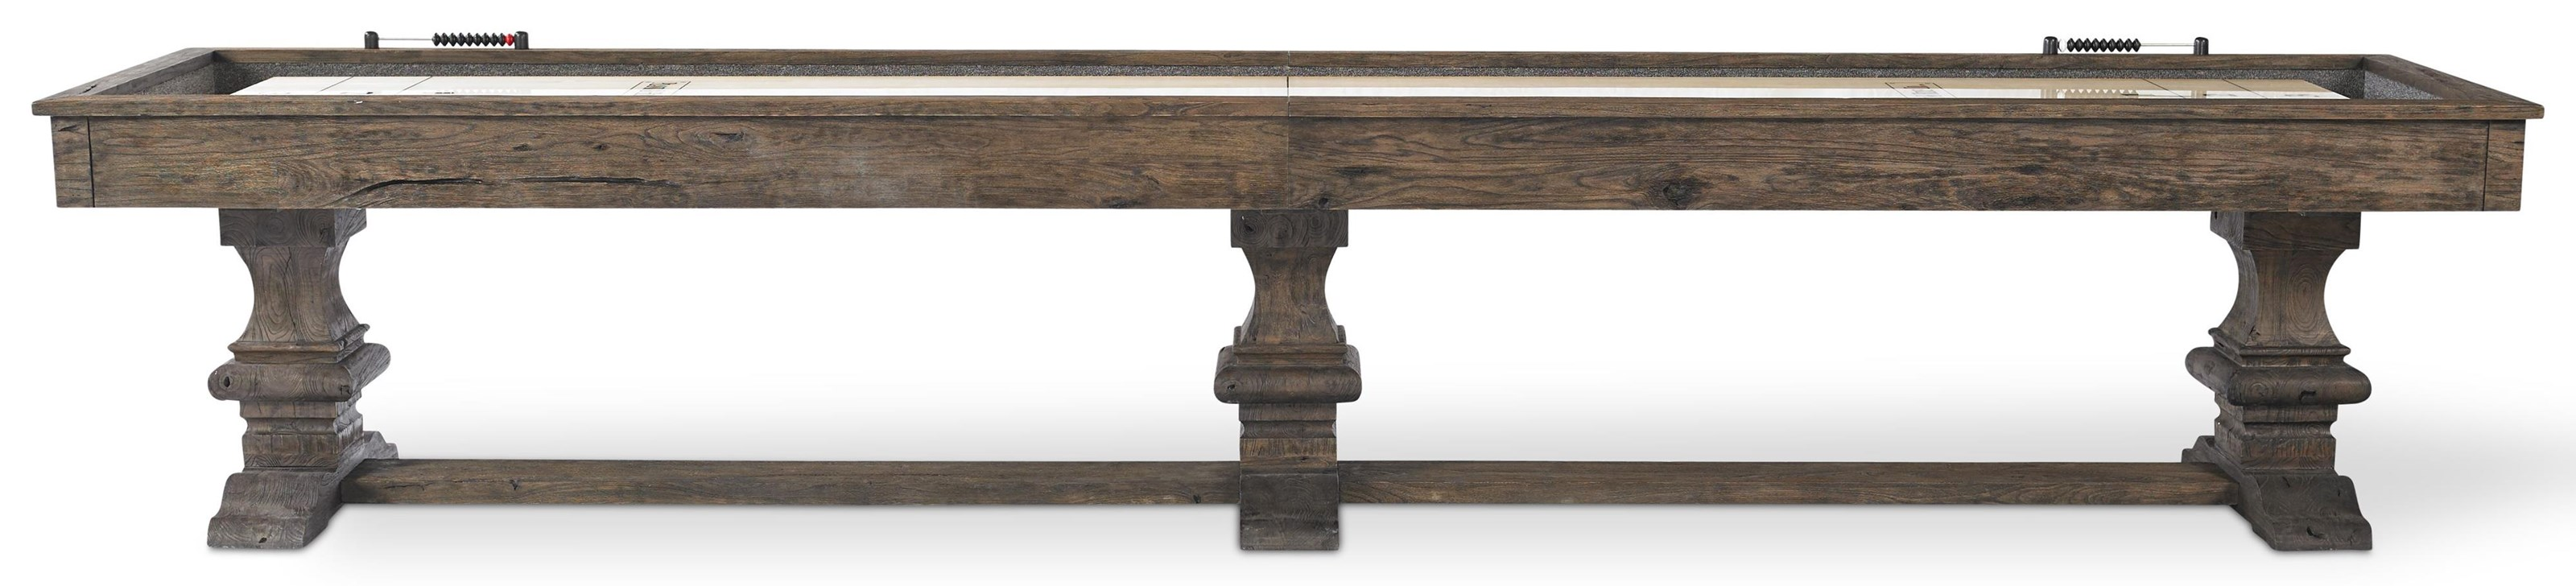 Beaumont 14' Shuffleboard by Plank & Hide at Johnny Janosik